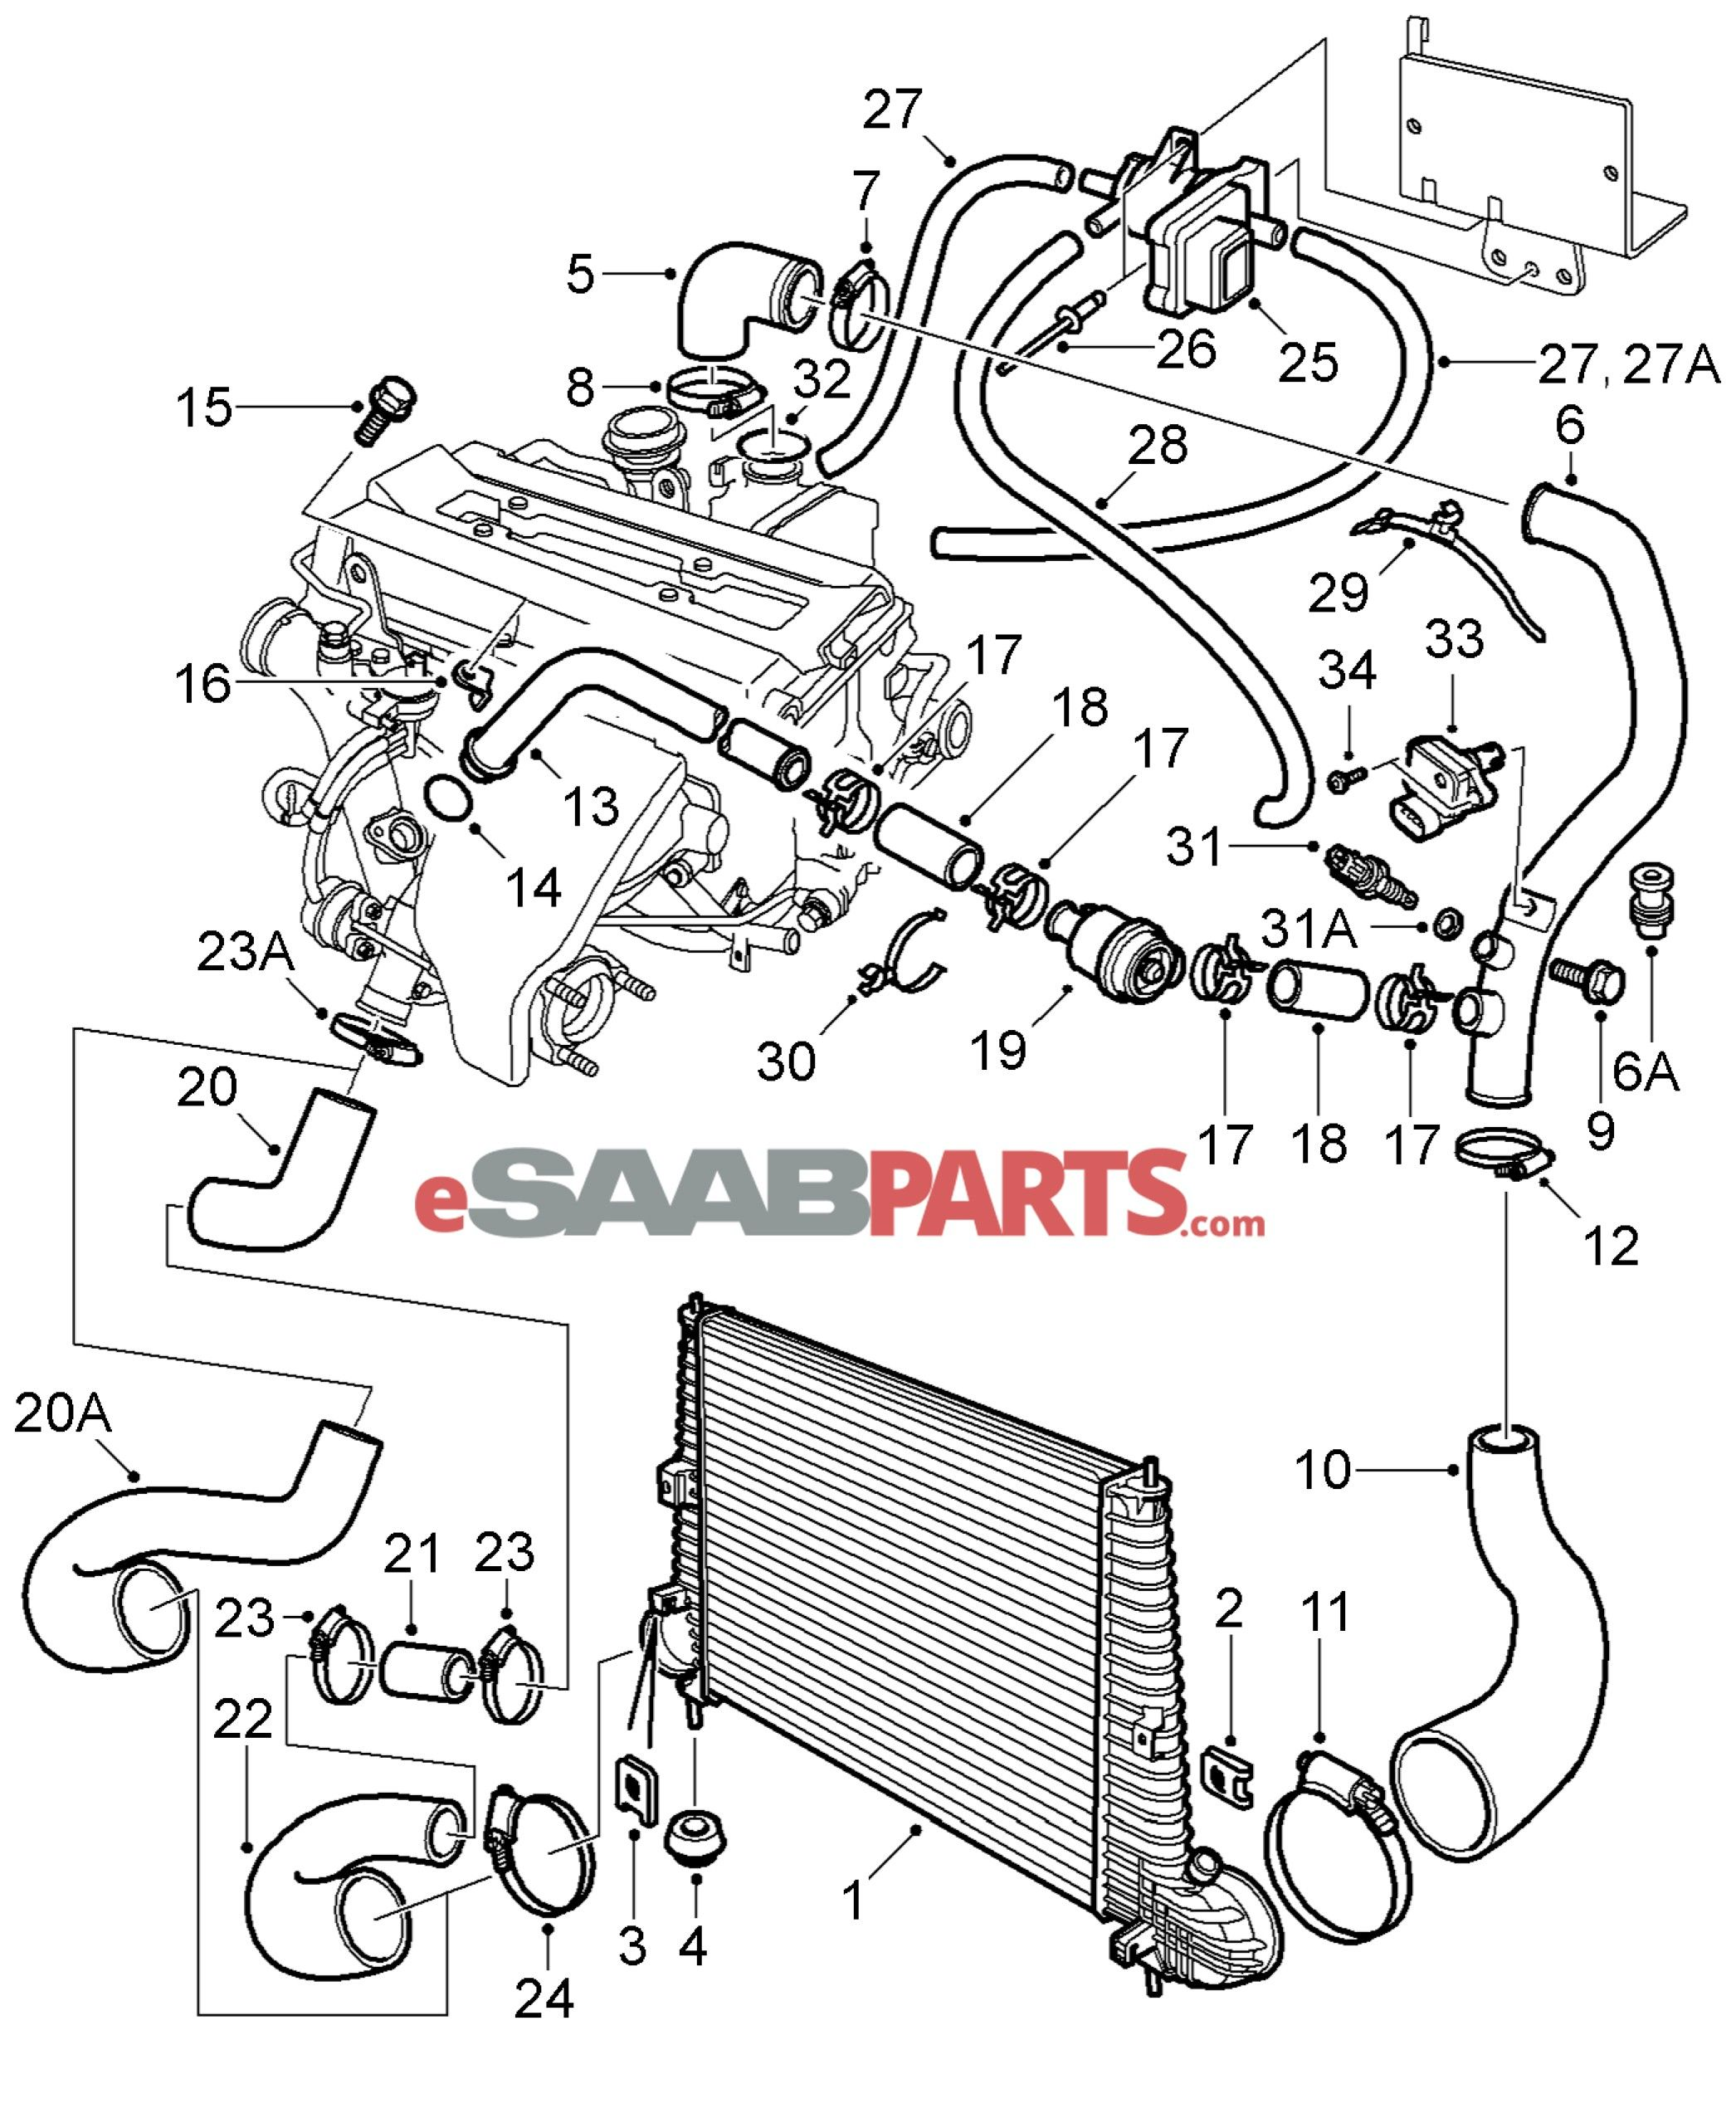 Dach Wiring Diagram Chevy Libraries 1988 2005 Saab 9 5 Engine Part Basic Guide U2022